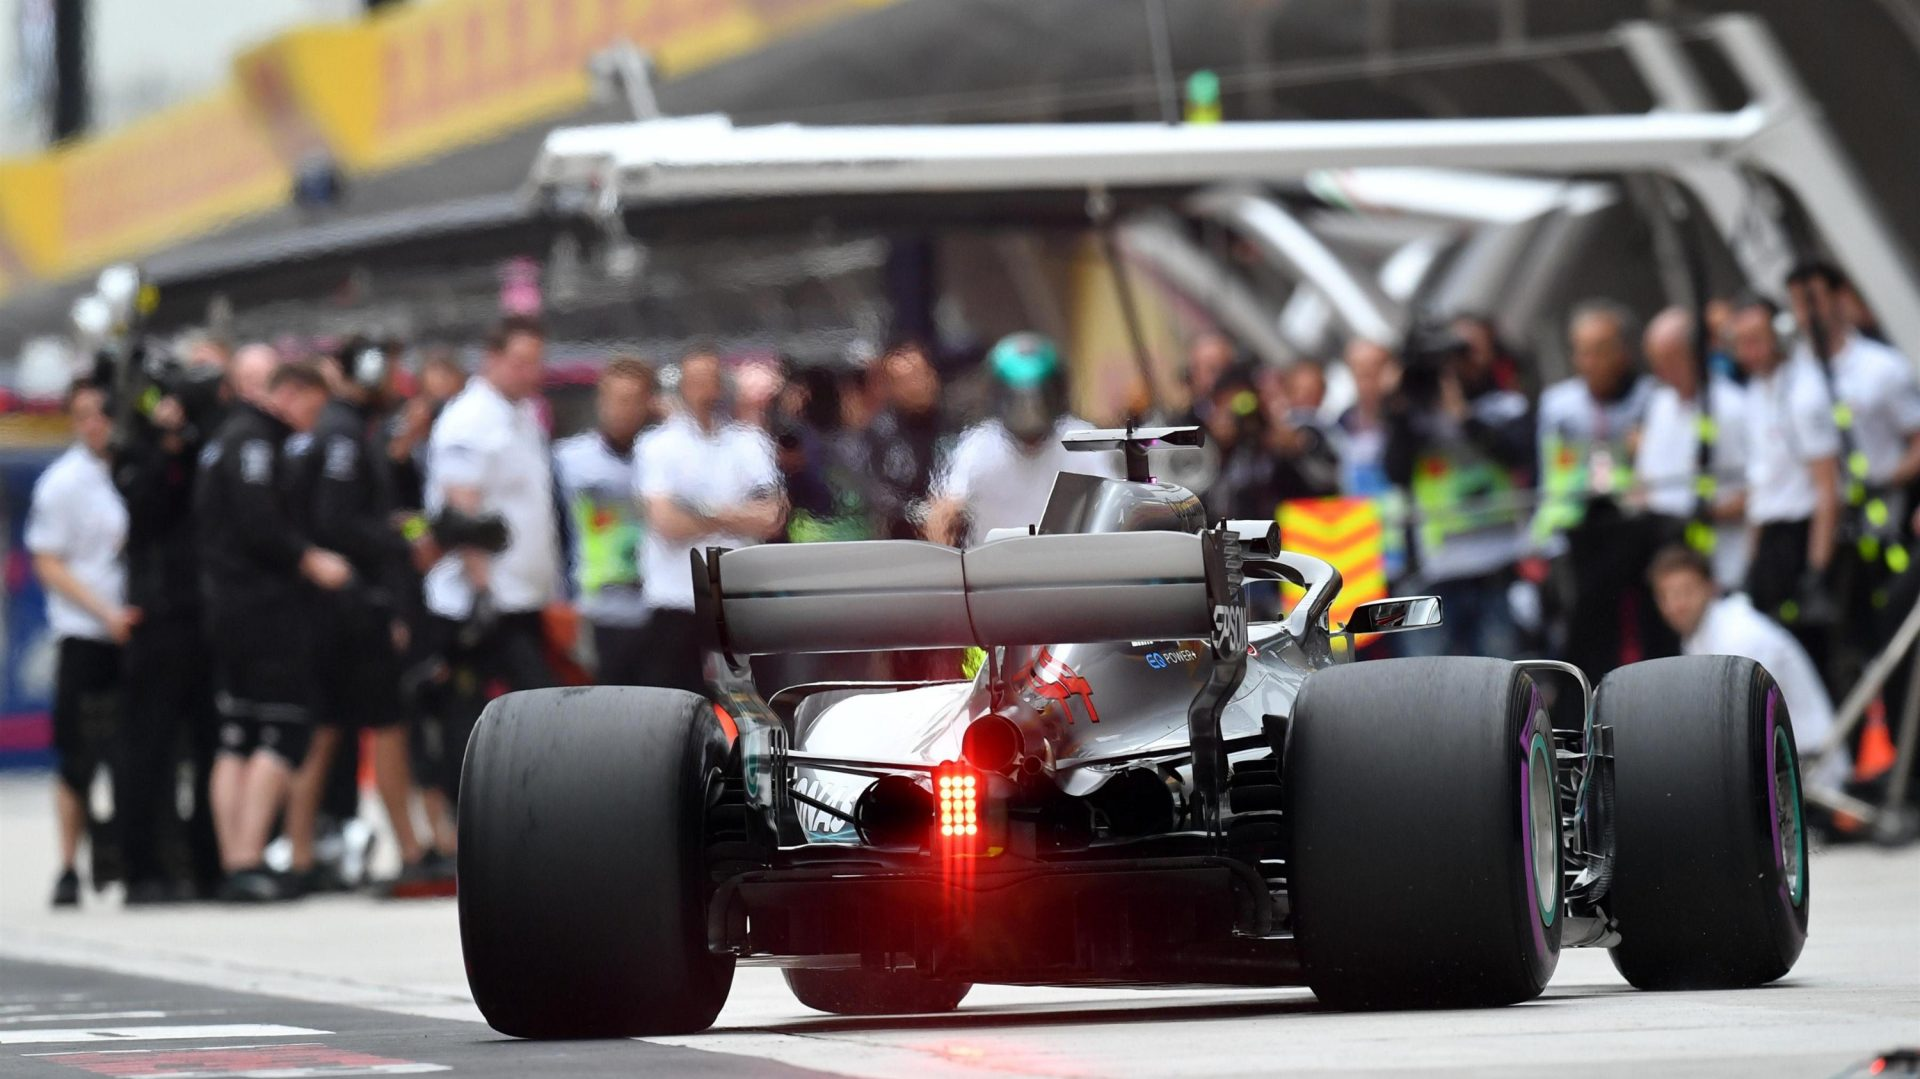 https://www.formula1.com/content/fom-website/en/latest/features/2018/4/gallery--the-best-images-from-friday-in-china/_jcr_content/featureContent/manual_gallery/image43.img.1920.medium.jpg/1523602285869.jpg